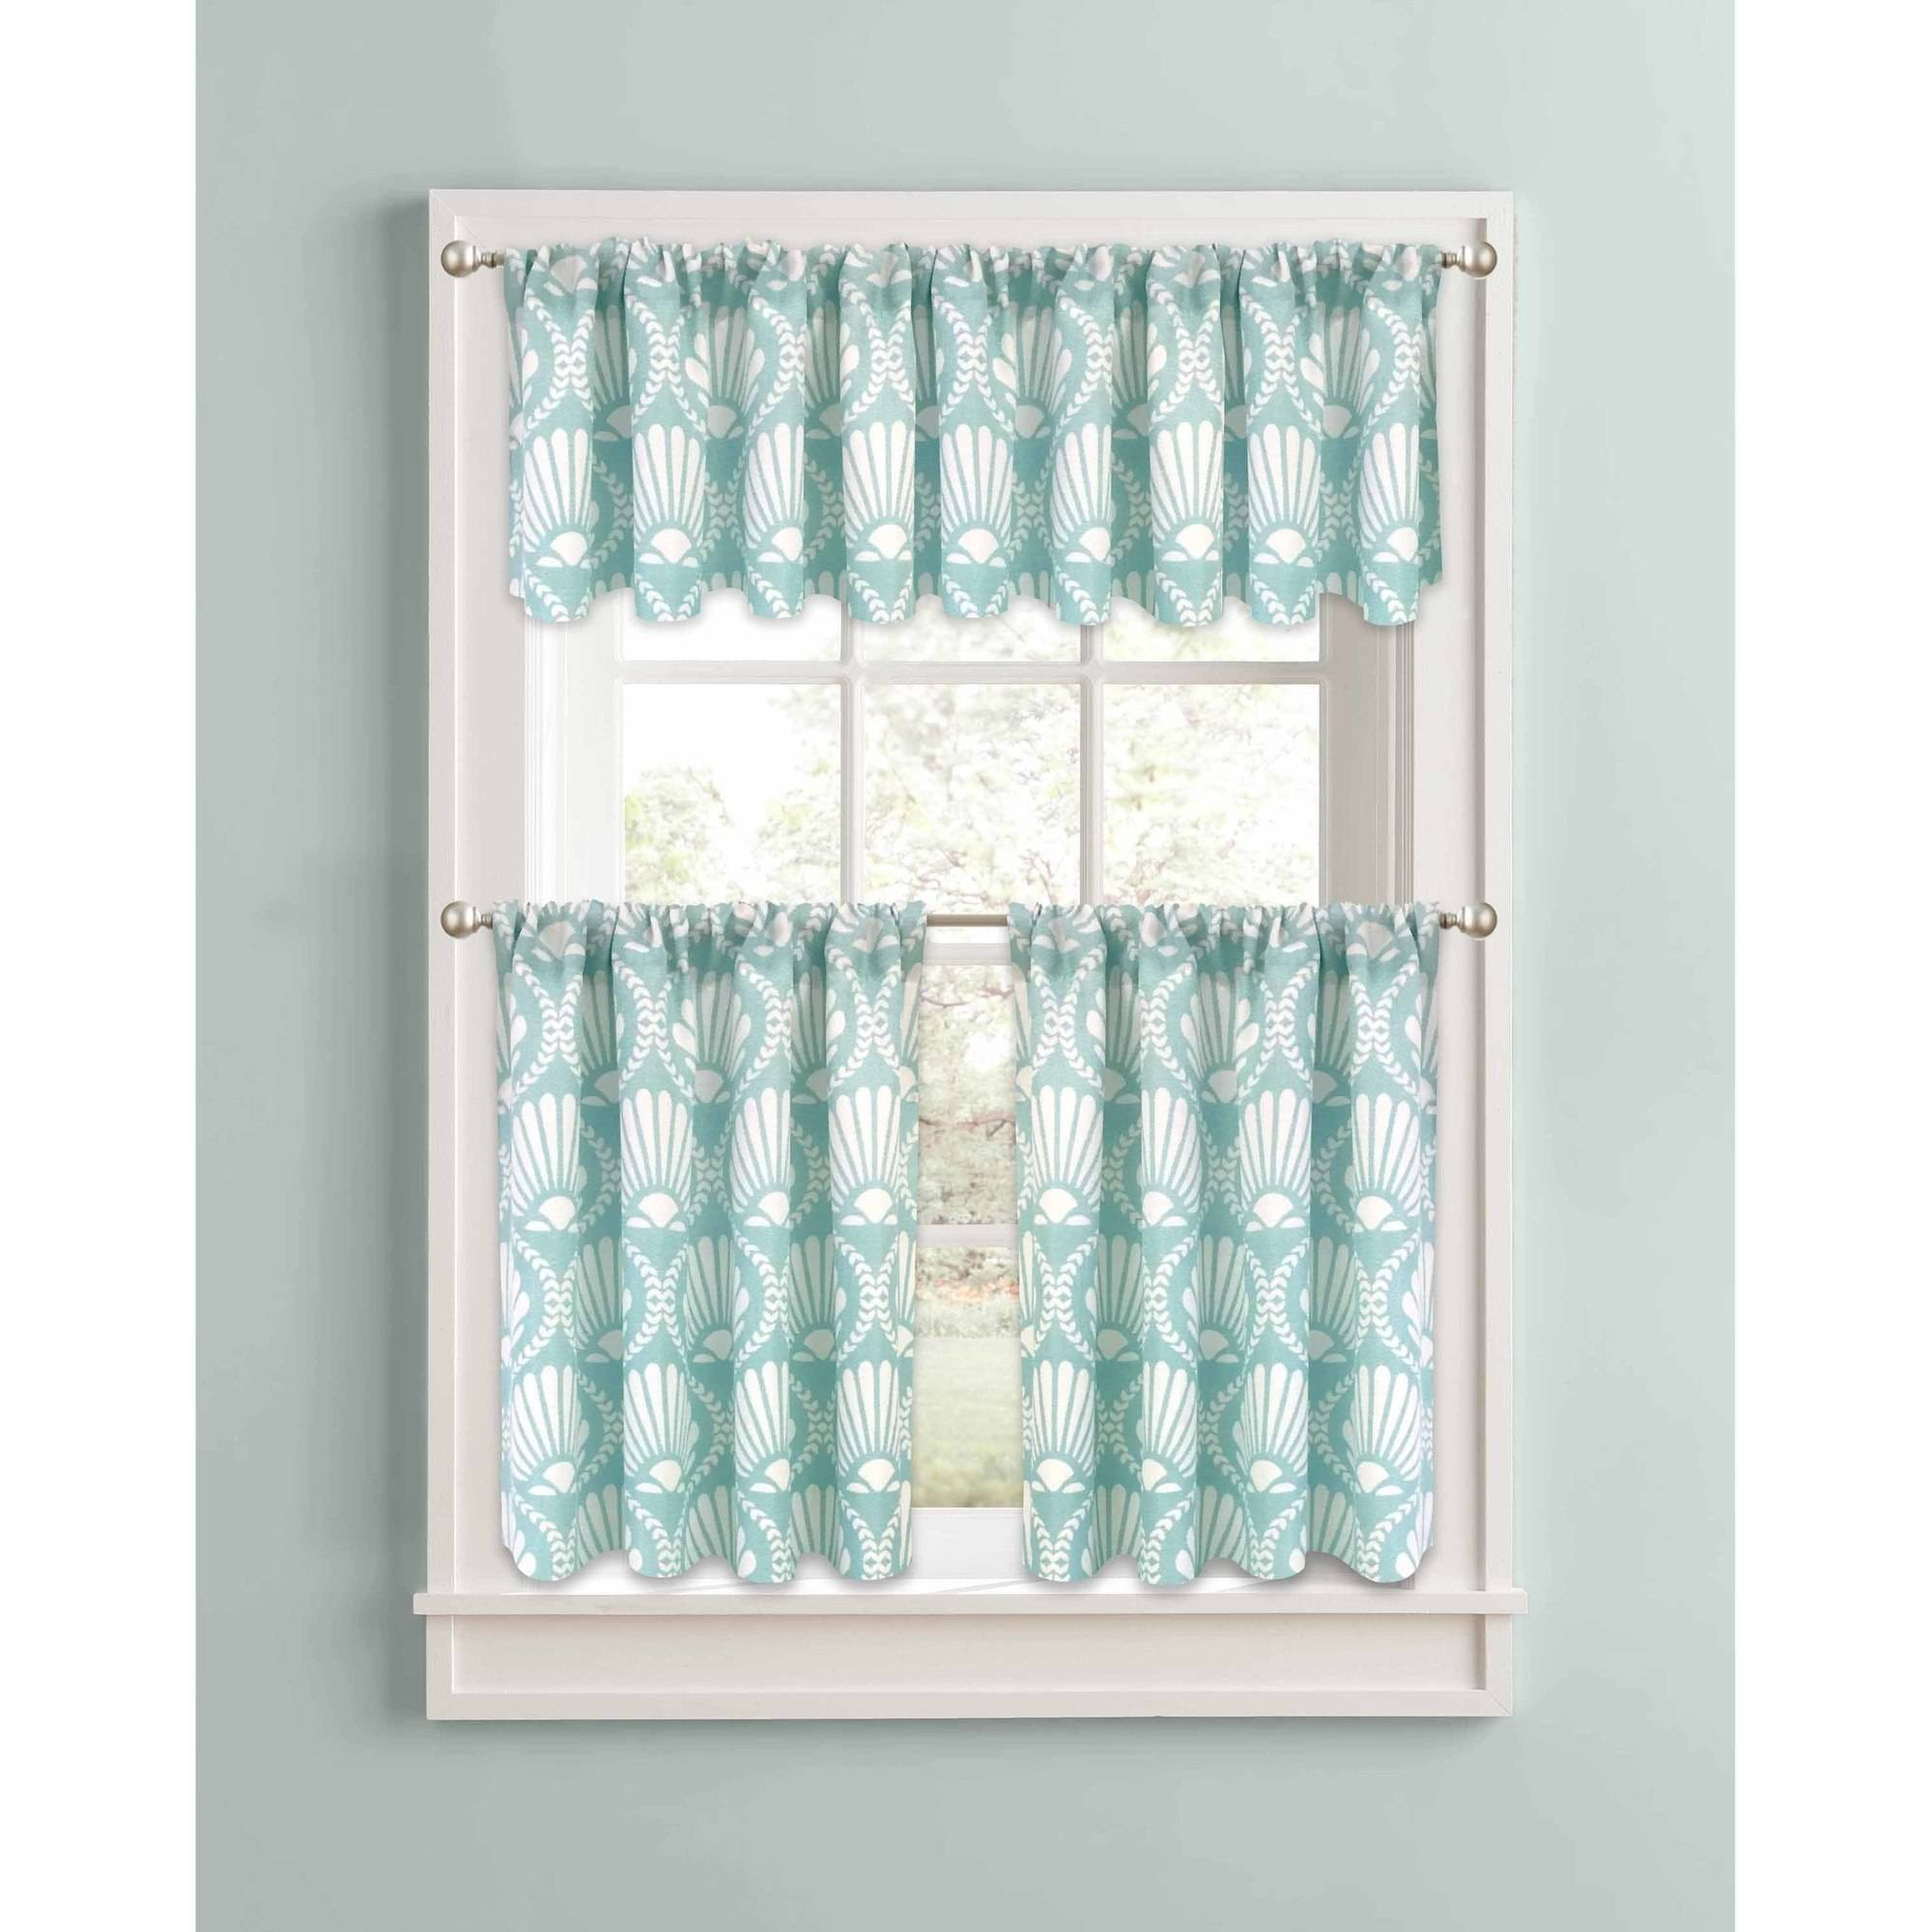 Better Homes and Gardens Aqua Venus Shells Kitchen Curtains, Set of 2 or Valance